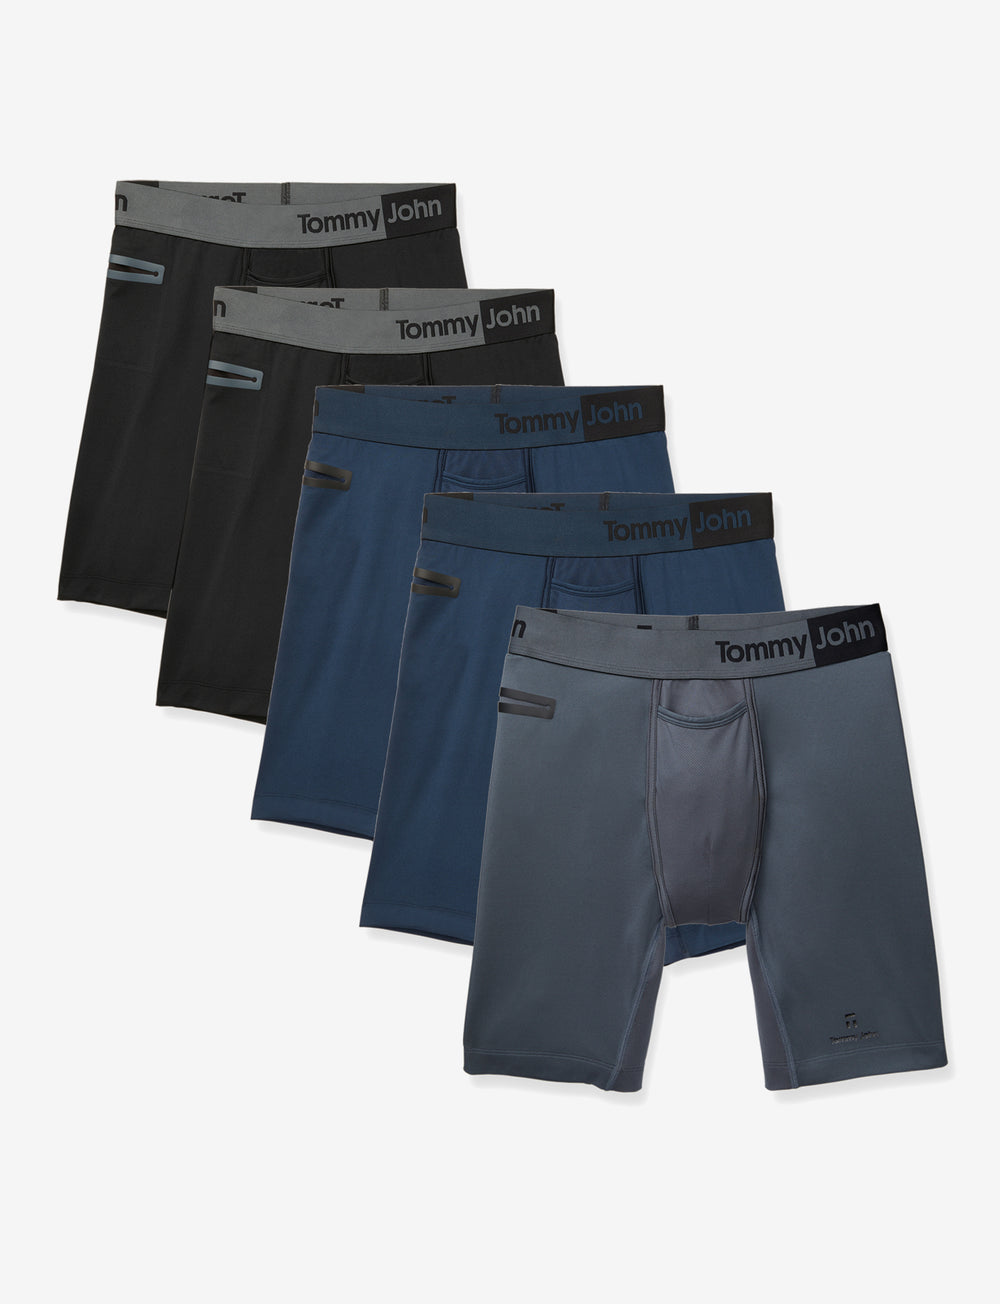 360 Sport 2.0 Boxer Brief 5 Pack Details Image